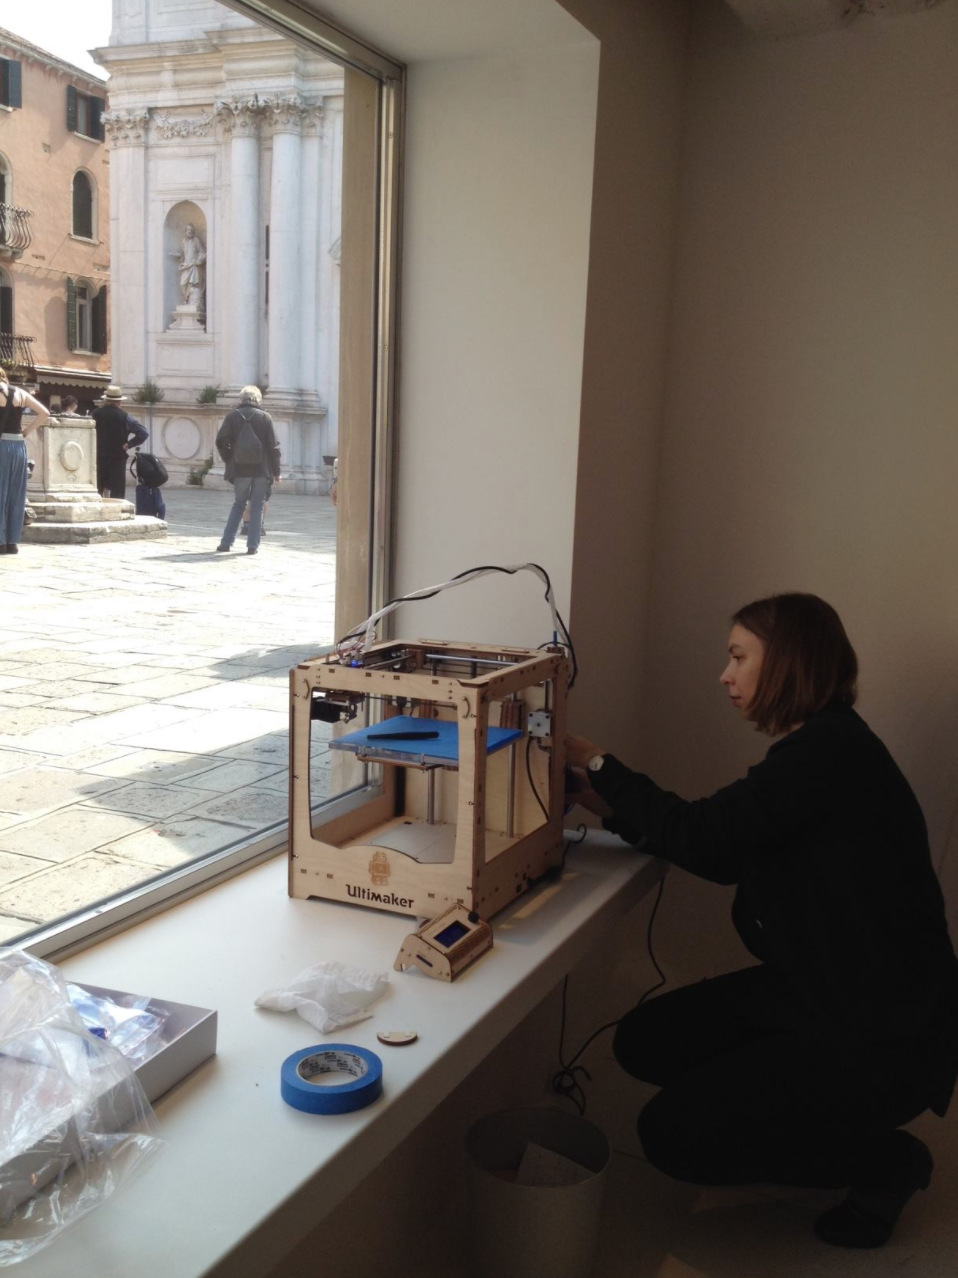 Consuelo Keller installing her show at OHMYBLUE, photo: OHYMBLUE